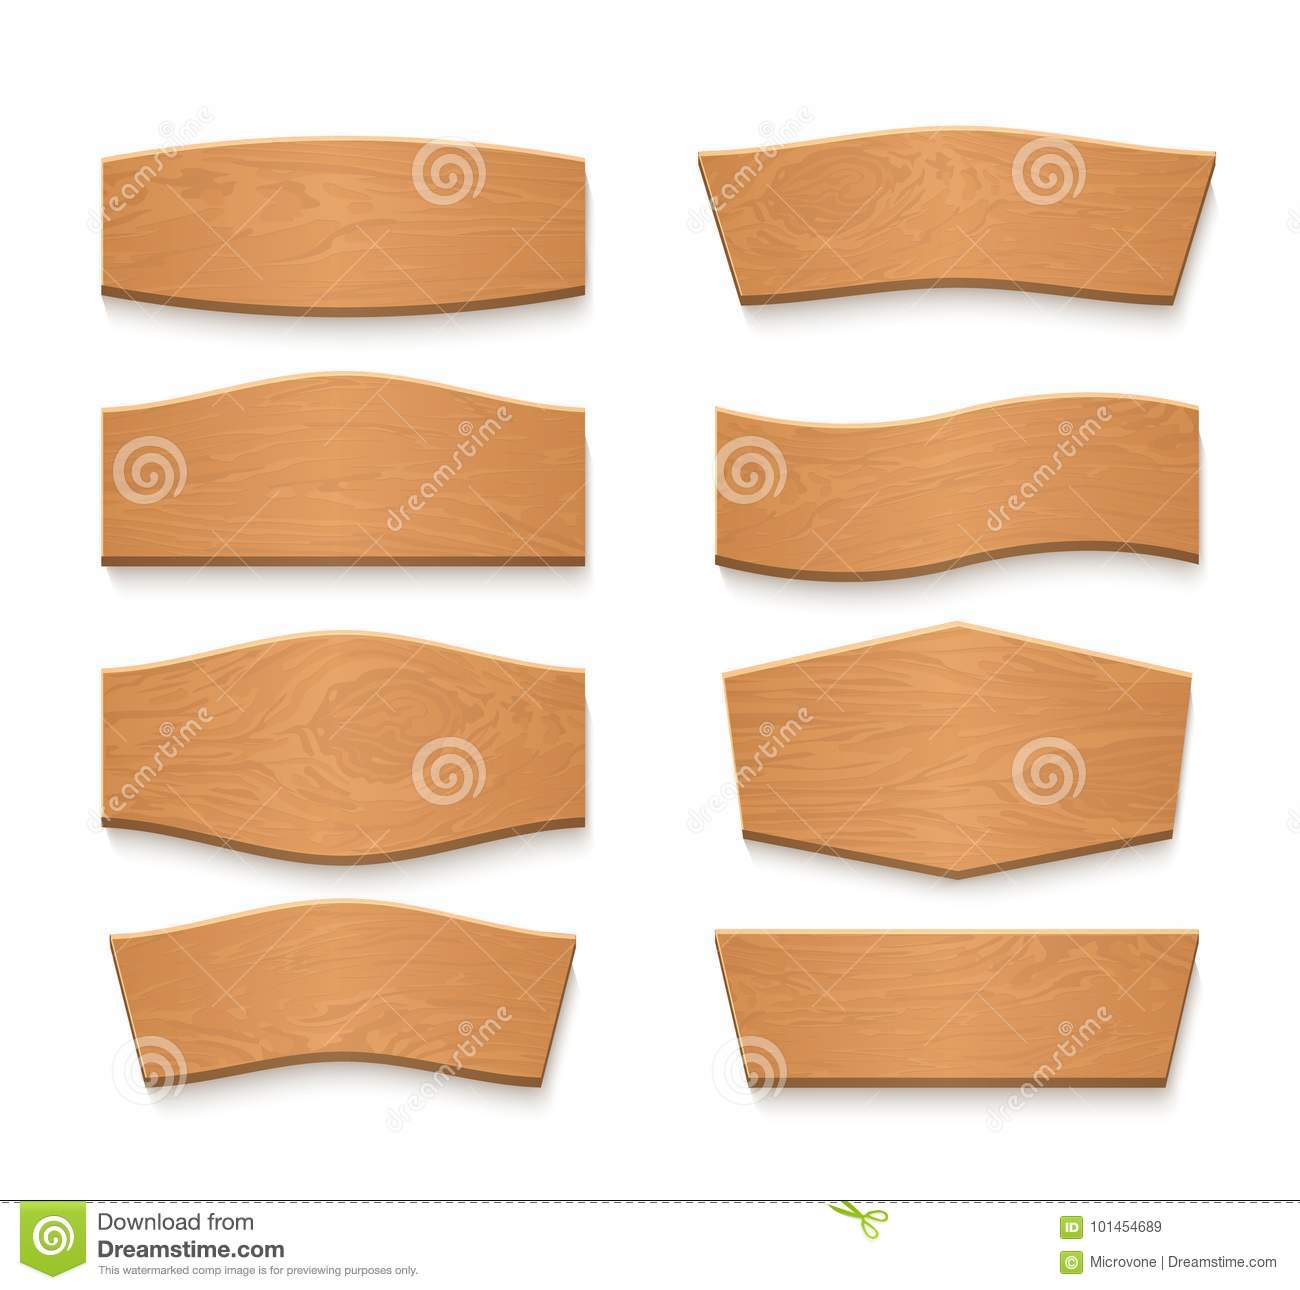 Cartoon wooden brown plate empty vector banners. Vintage wood ribbons set